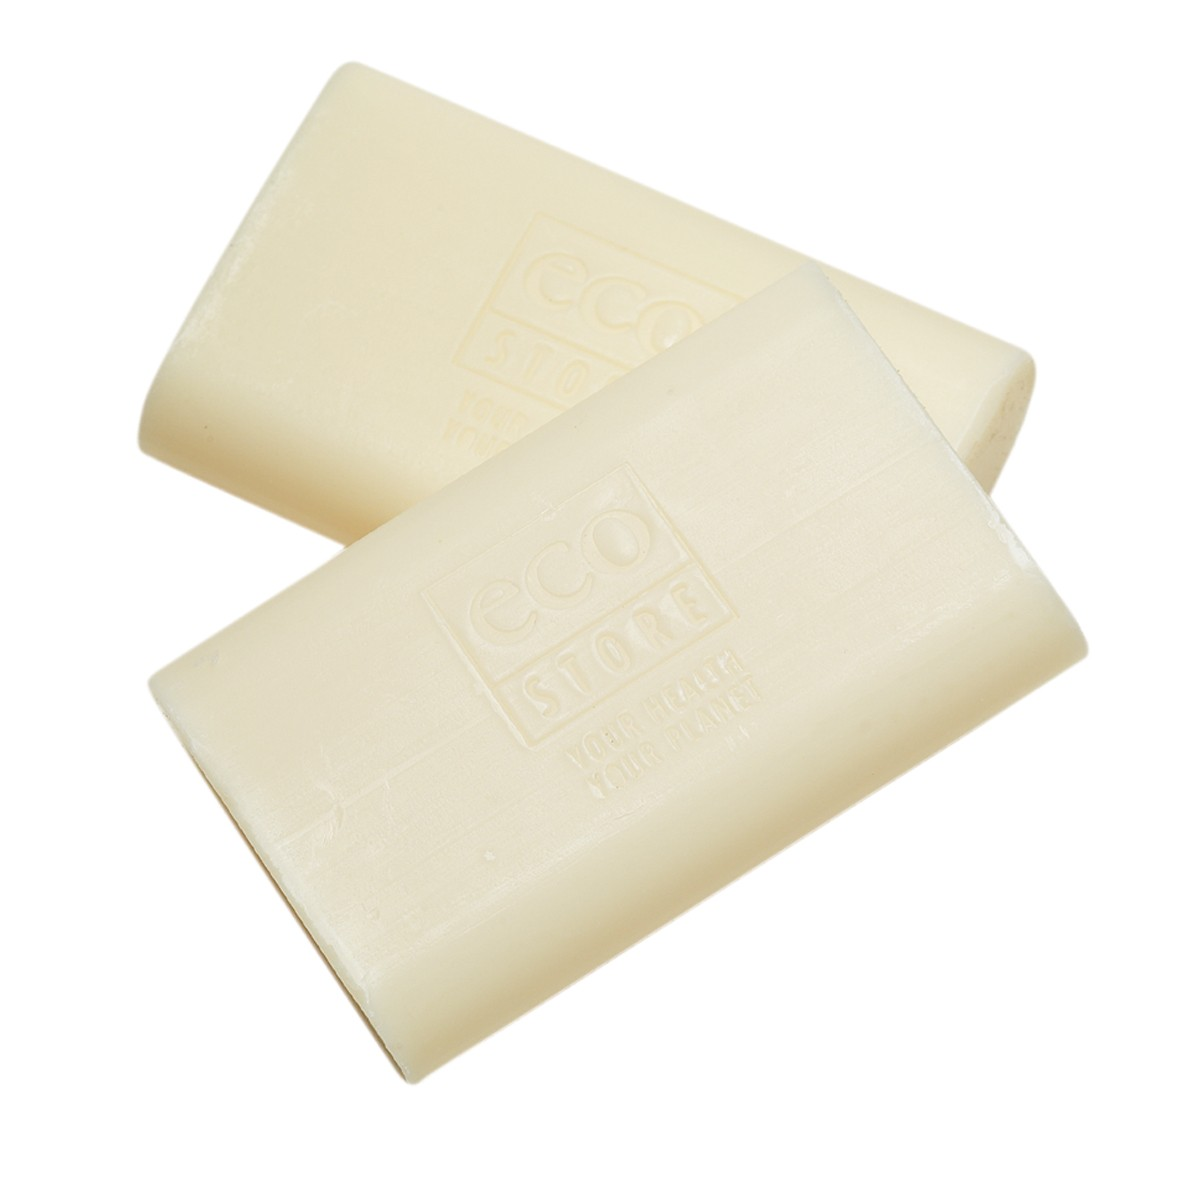 ecostore - Coconut Soap 100g